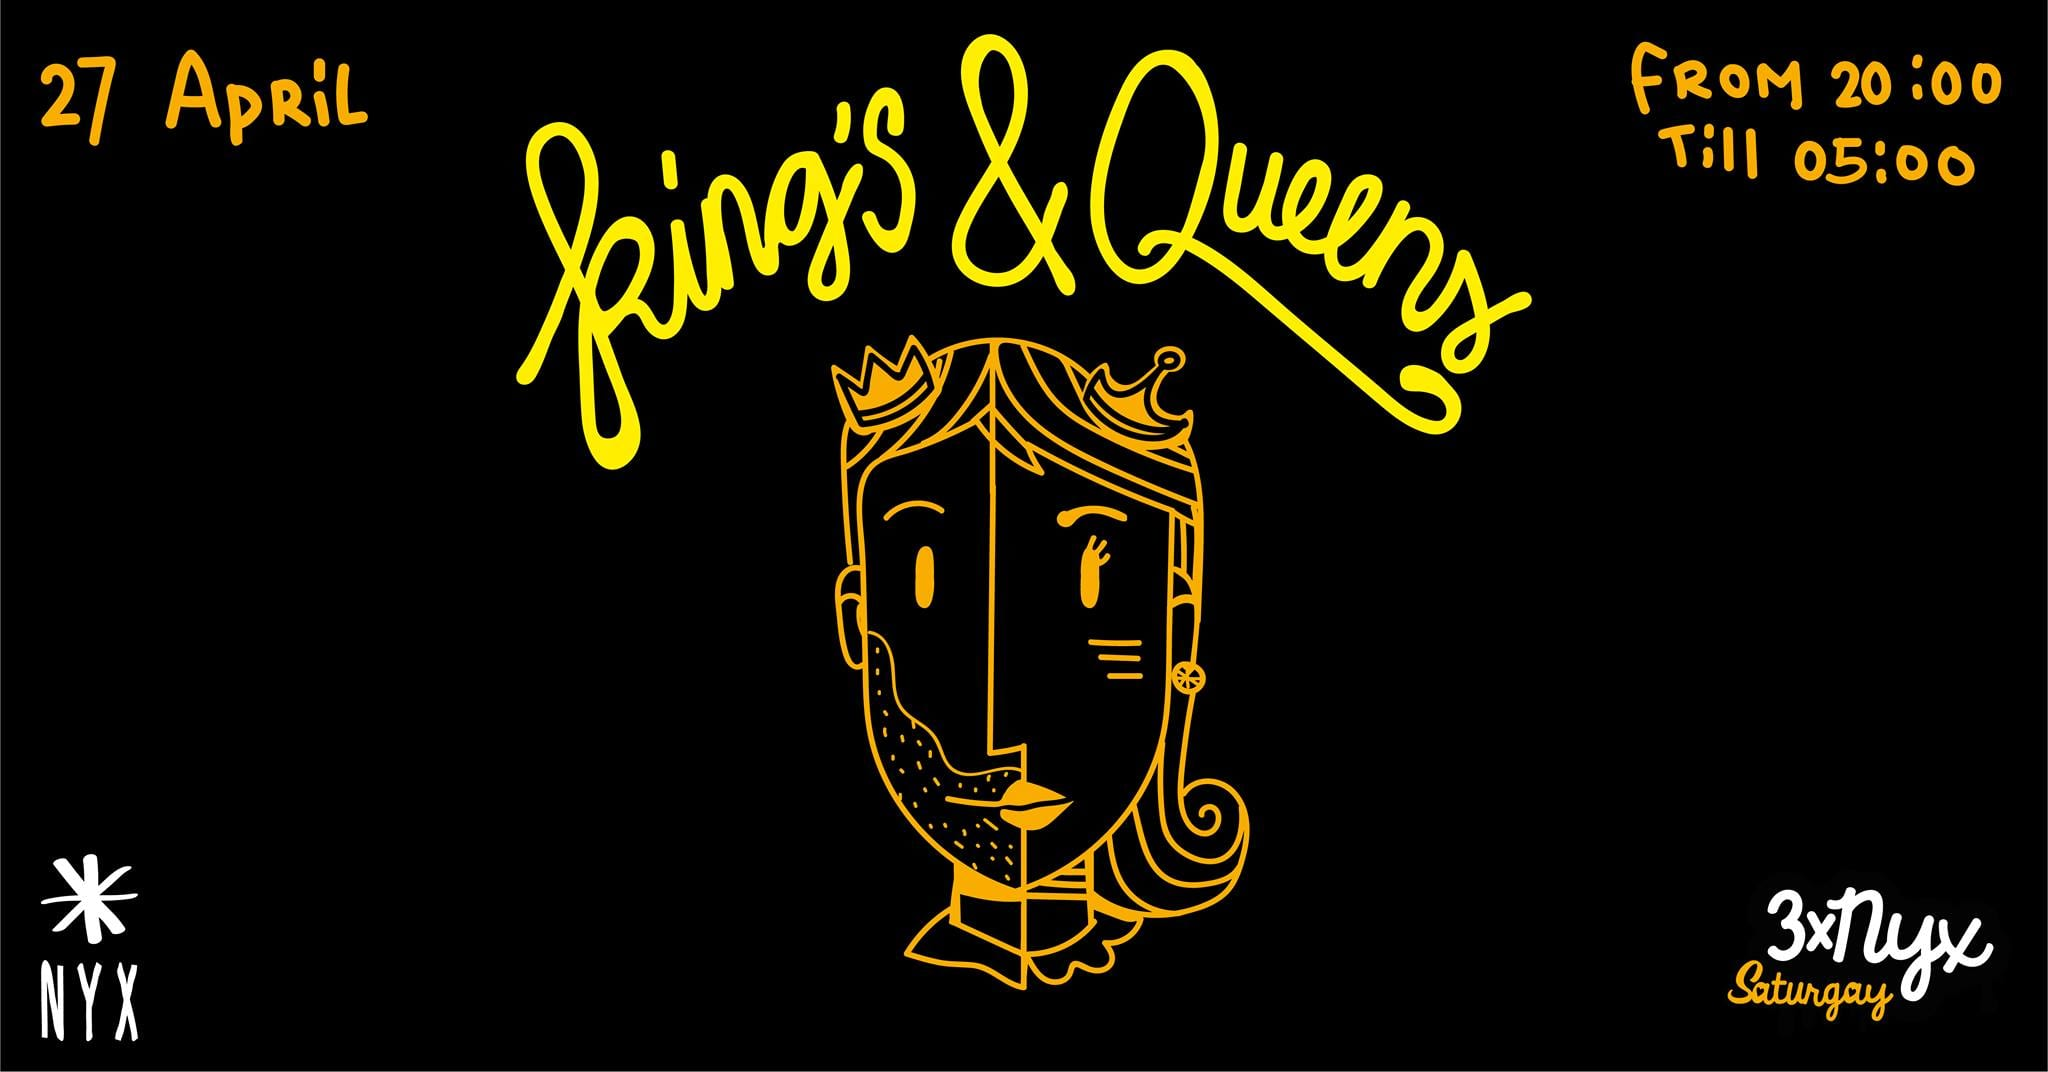 3x NYX presents Kings & Queens (Kingsday) Gay Party King's Day Club NYX